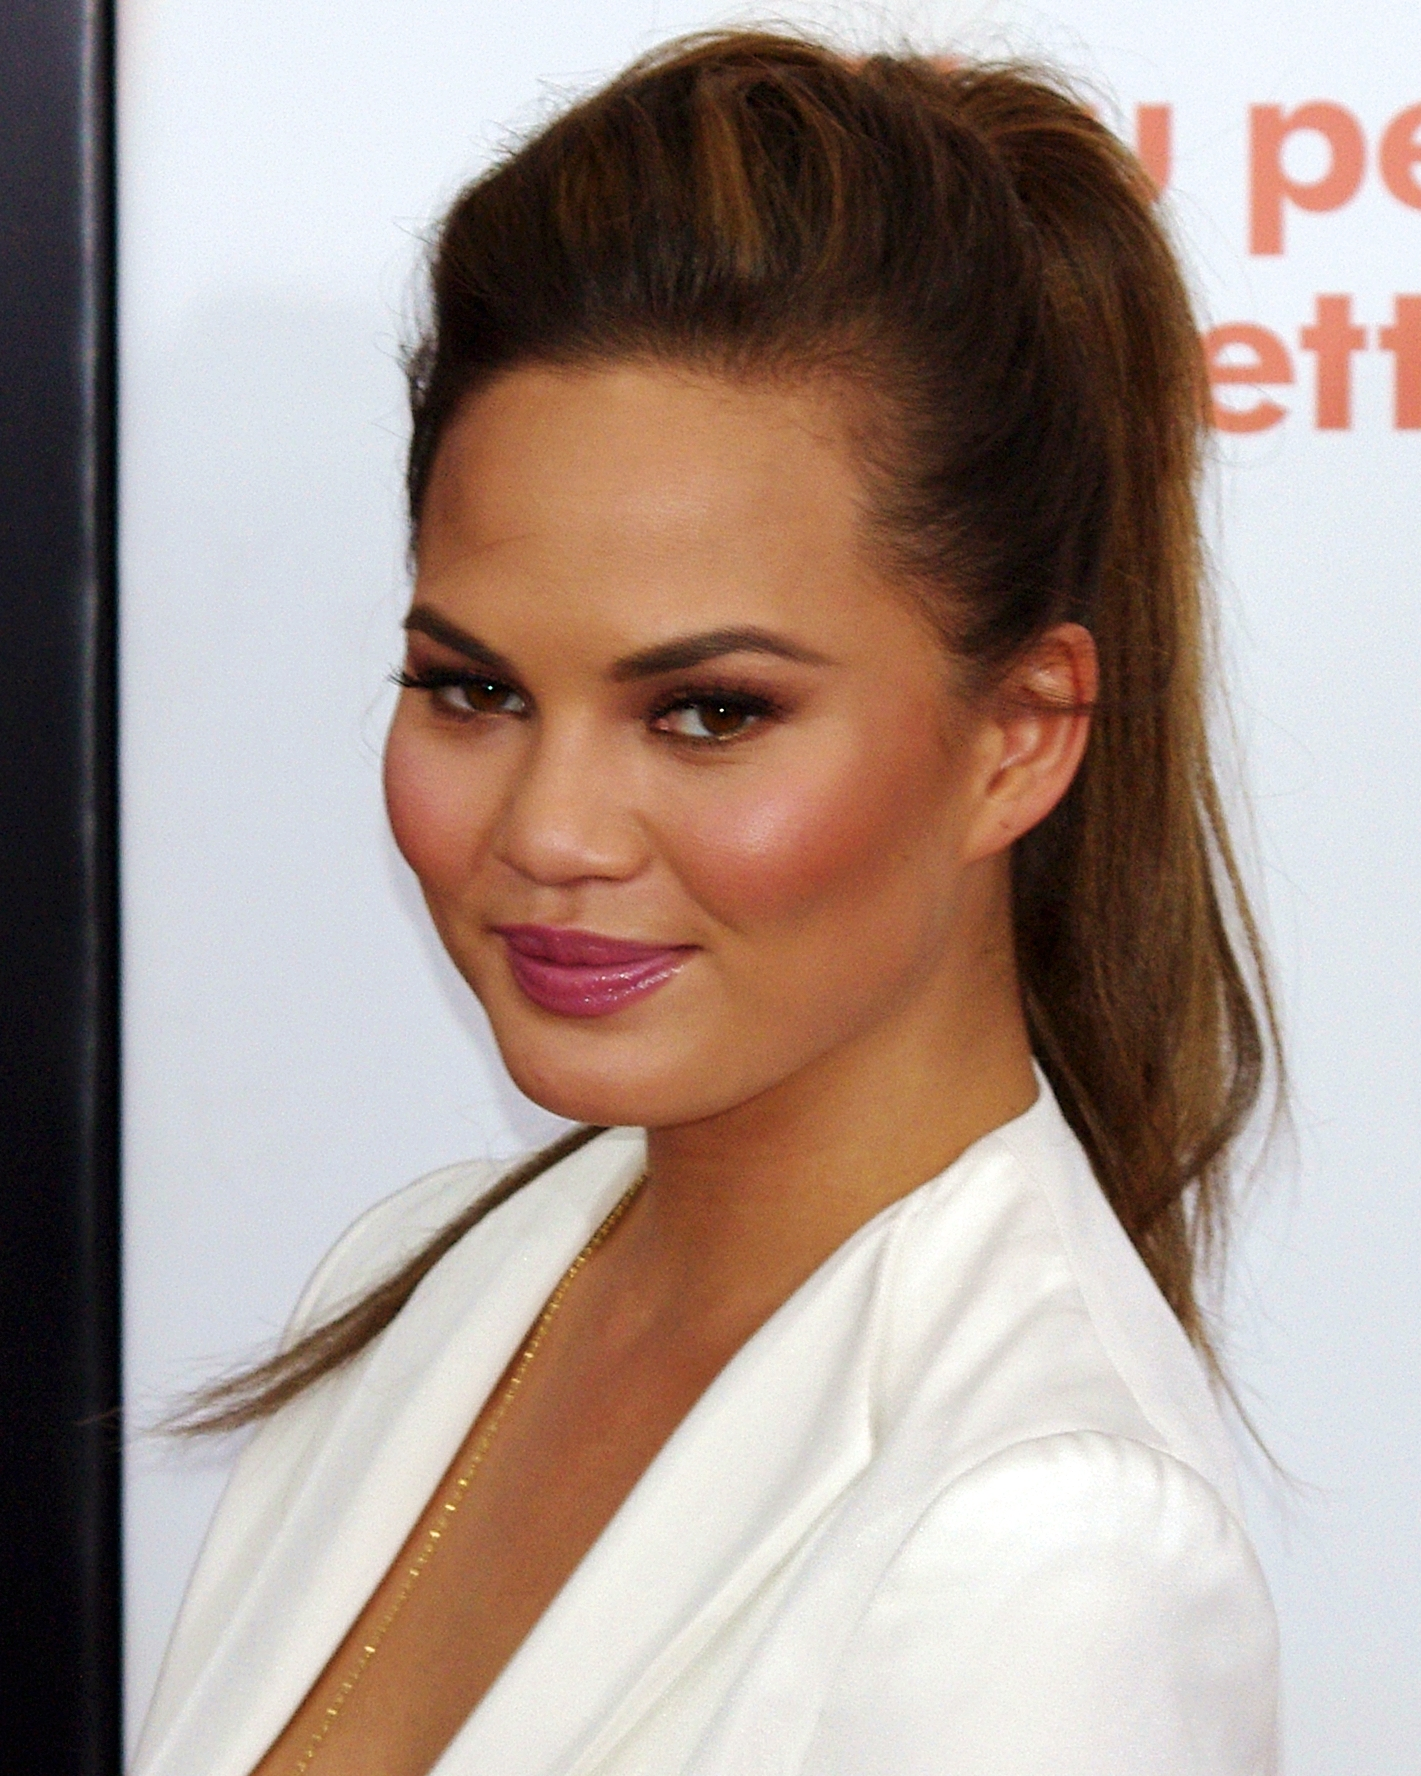 The 33-year old daughter of father (?) and mother Vilailuck Teigen Chrissy Teigen in 2019 photo. Chrissy Teigen earned a  million dollar salary - leaving the net worth at 2 million in 2019